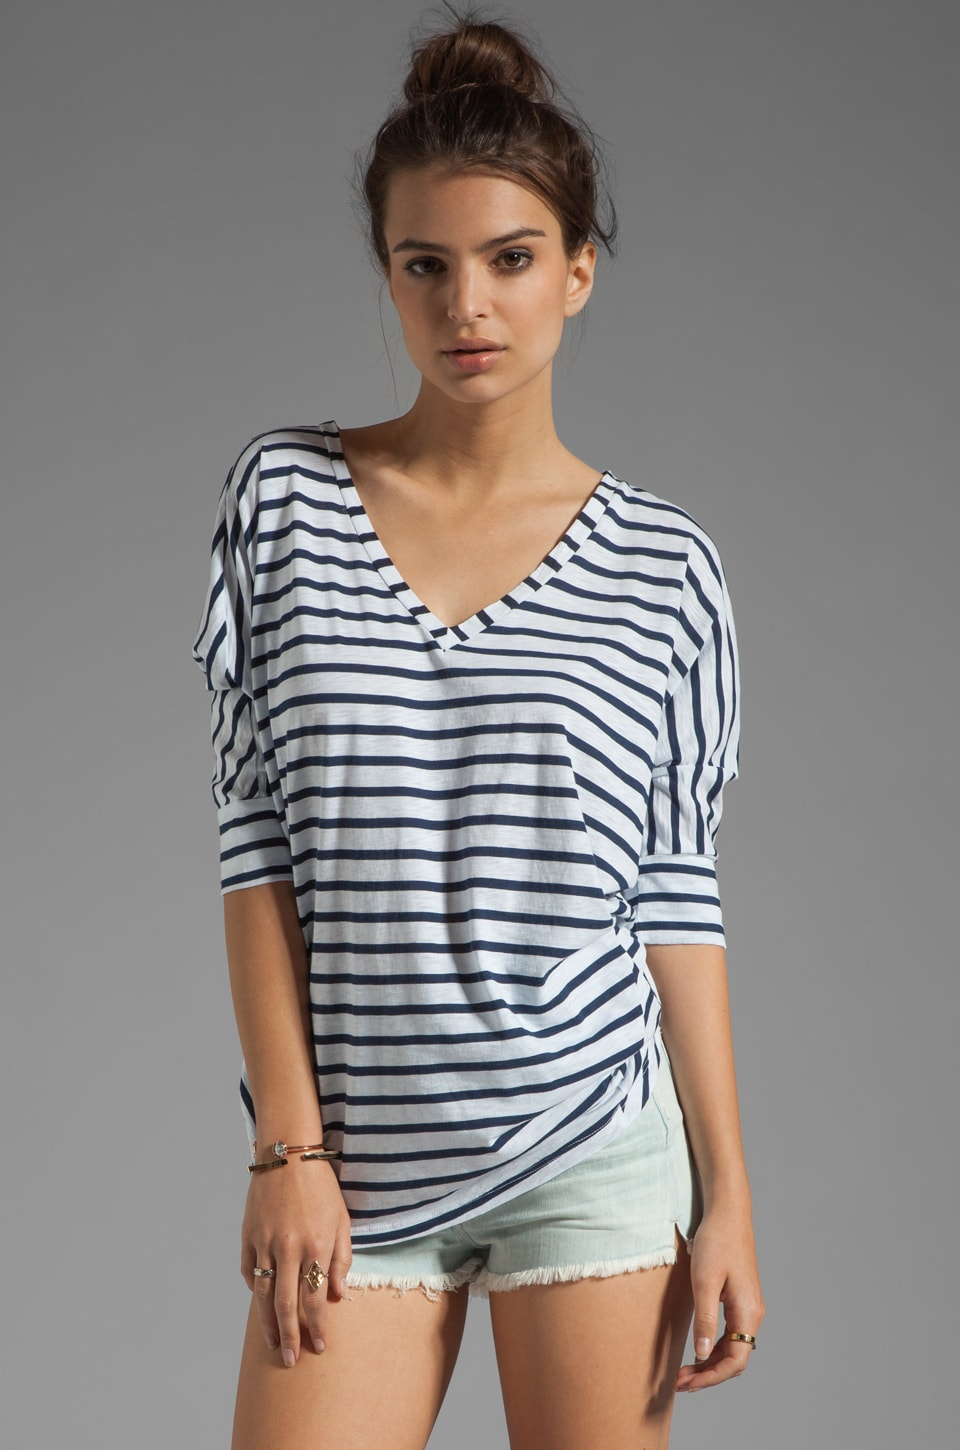 Splendid Miami Stripe V Neck in Paper